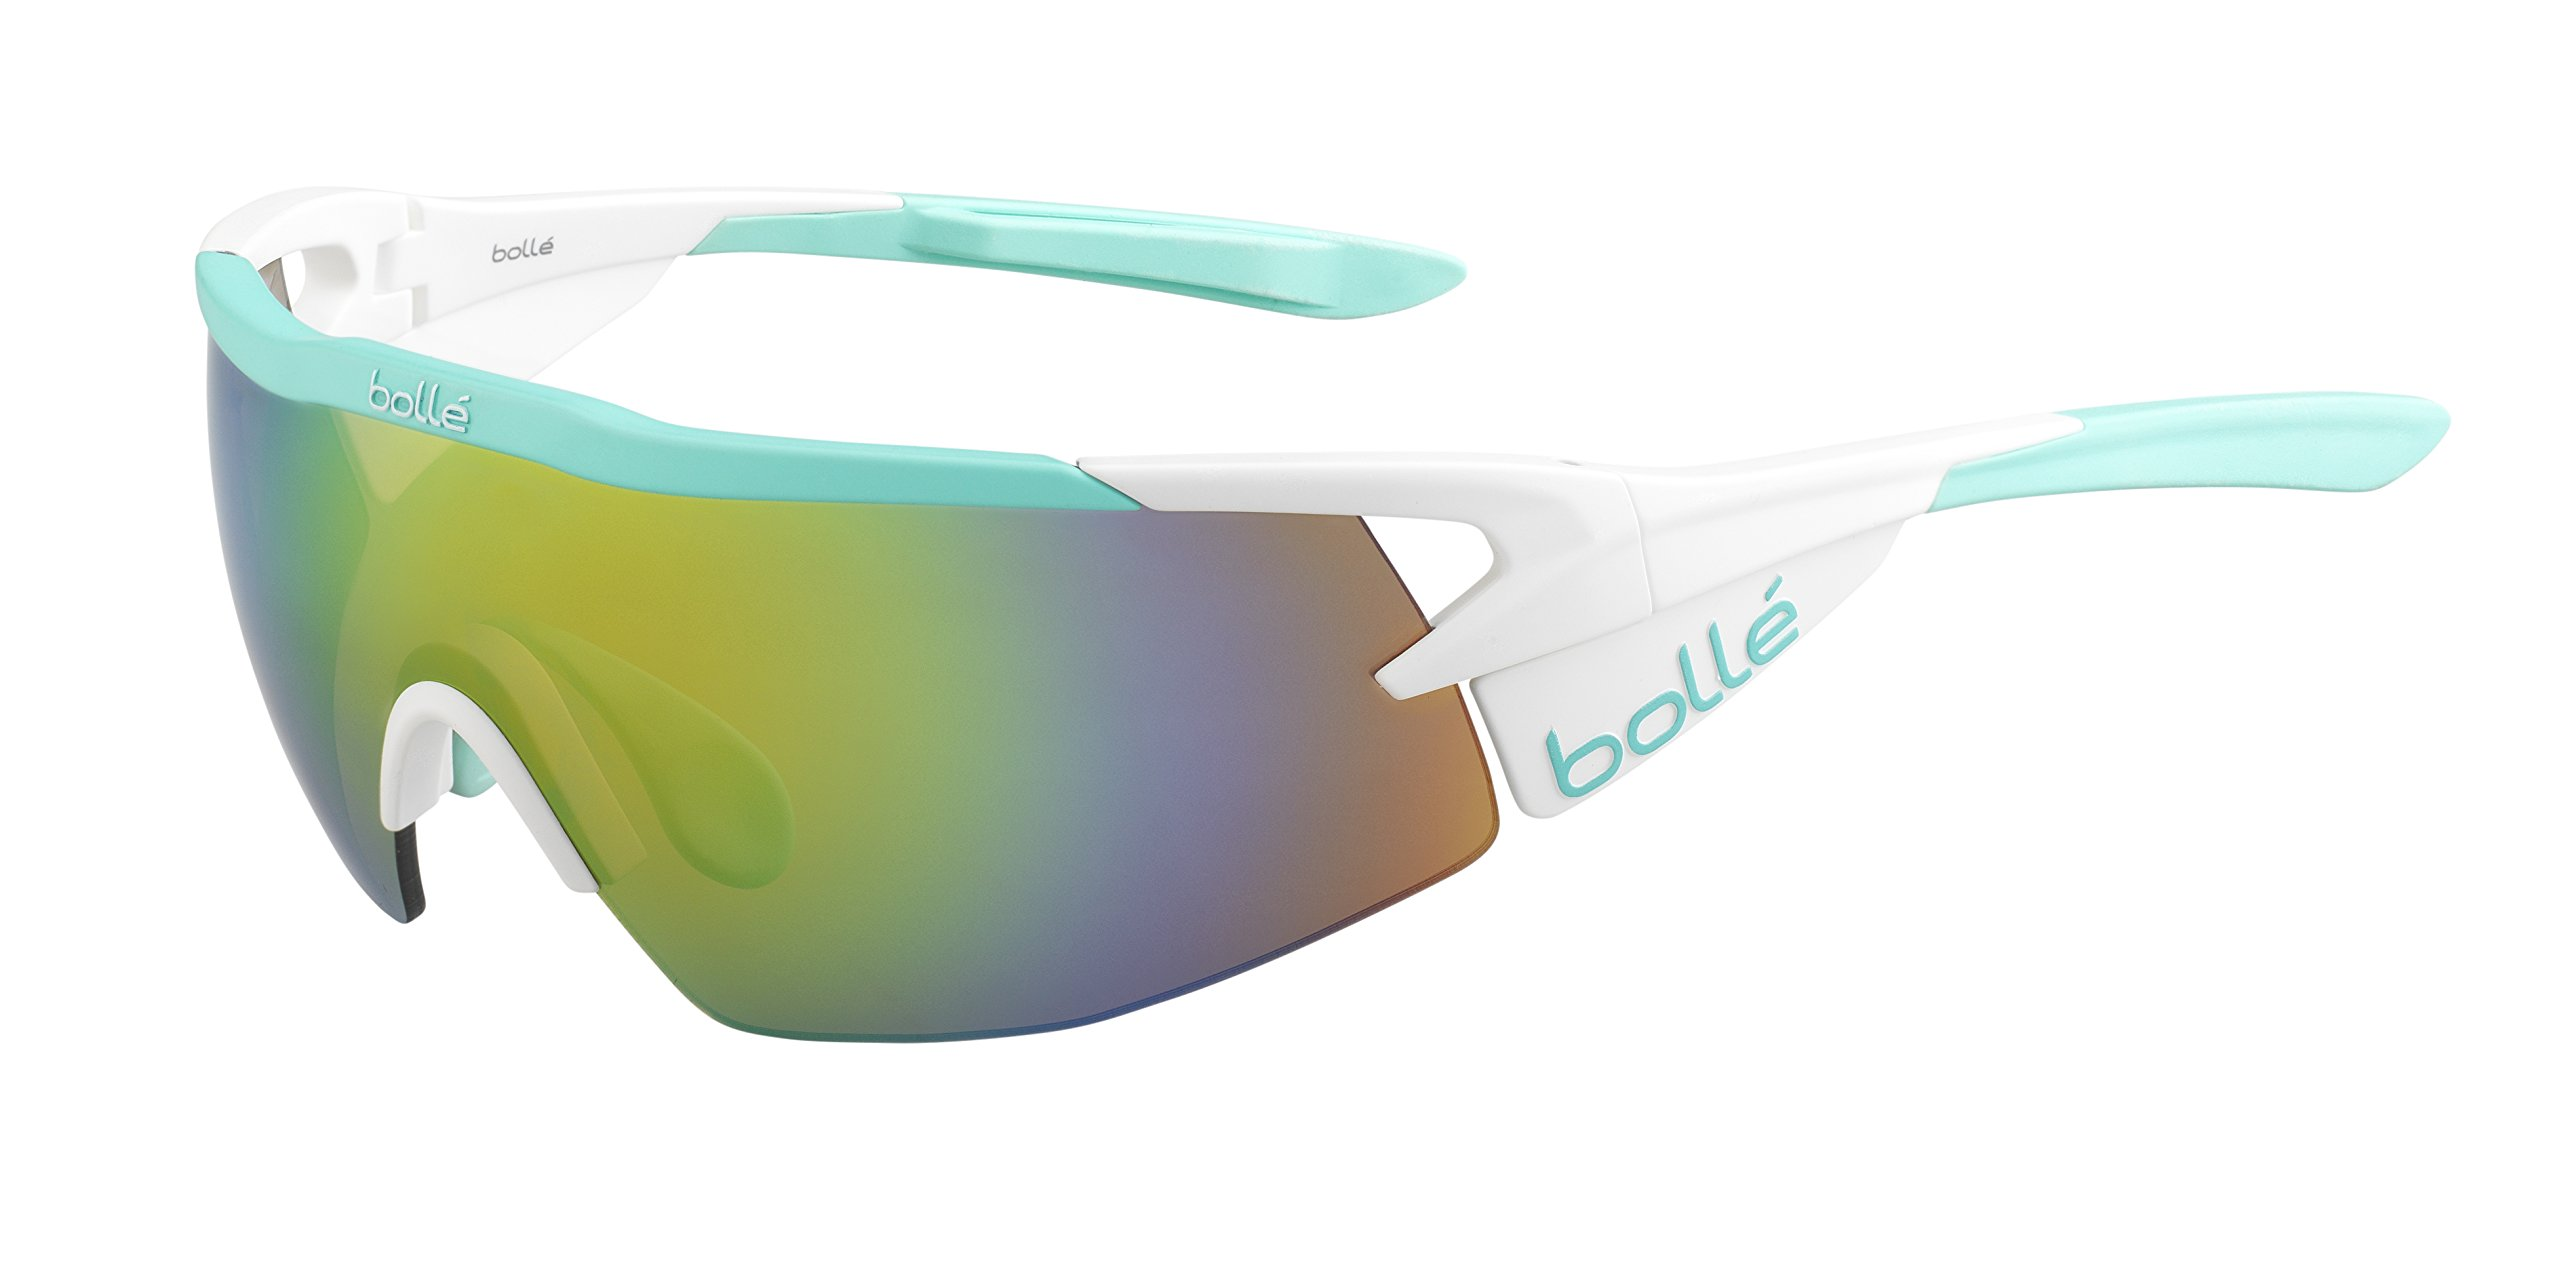 Bolle Aeromax Sunglasses Matte White/Mint, Multi by Bolle